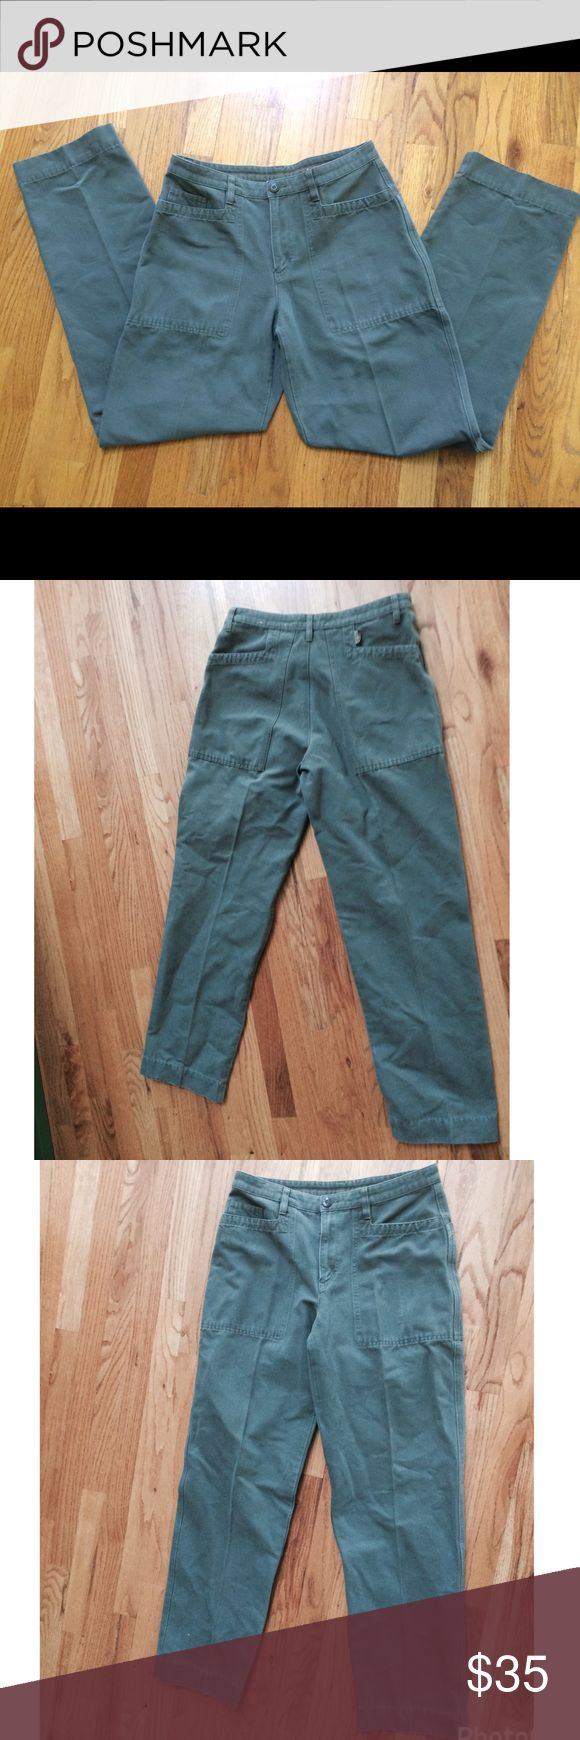 Patagonia Straight Leg Gray-Green Cotton Pants Perfect condition grayish green Patagonia pants. Size 10. Very sturdy! Measurements: Waist-30in, Front Rise-10in, Back Rise-13in, inseam-30in, outseam-41.5in, leg opening-17in Patagonia Pants